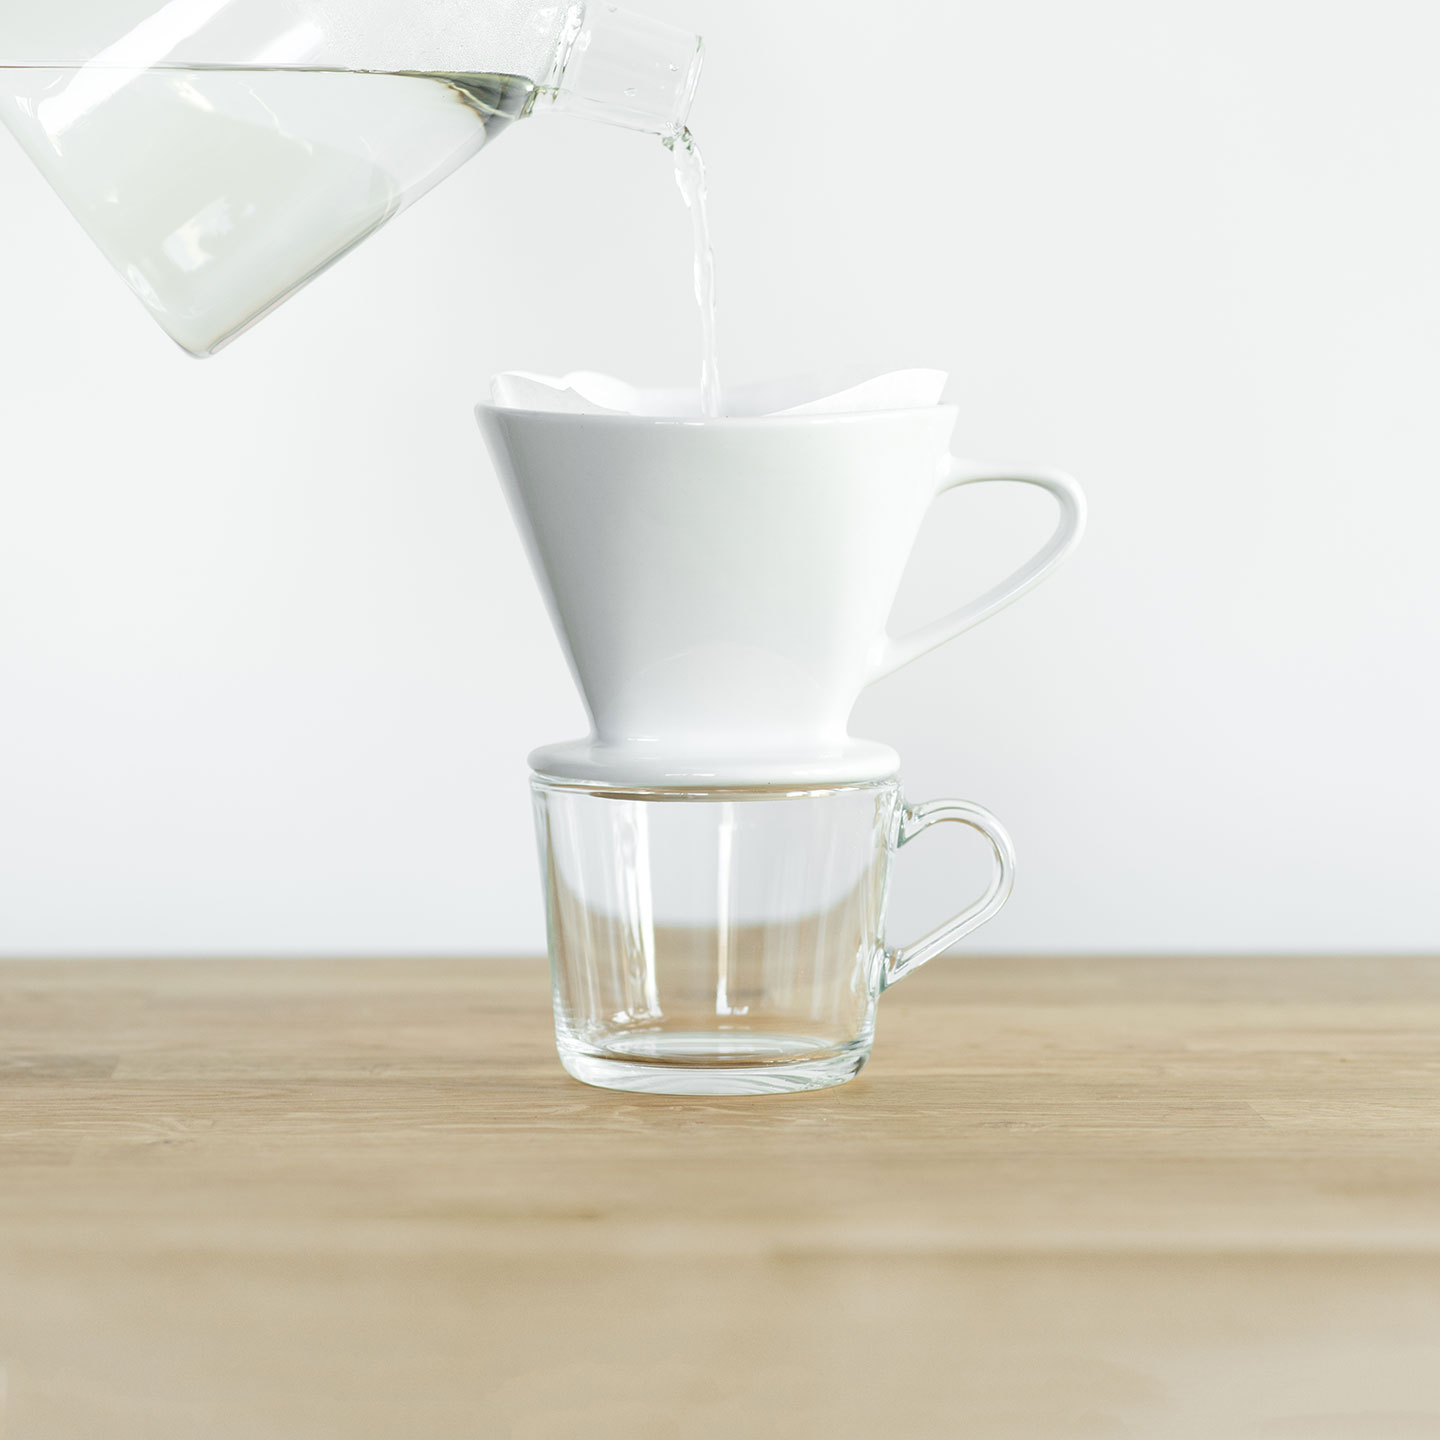 Step 02: Pour Water